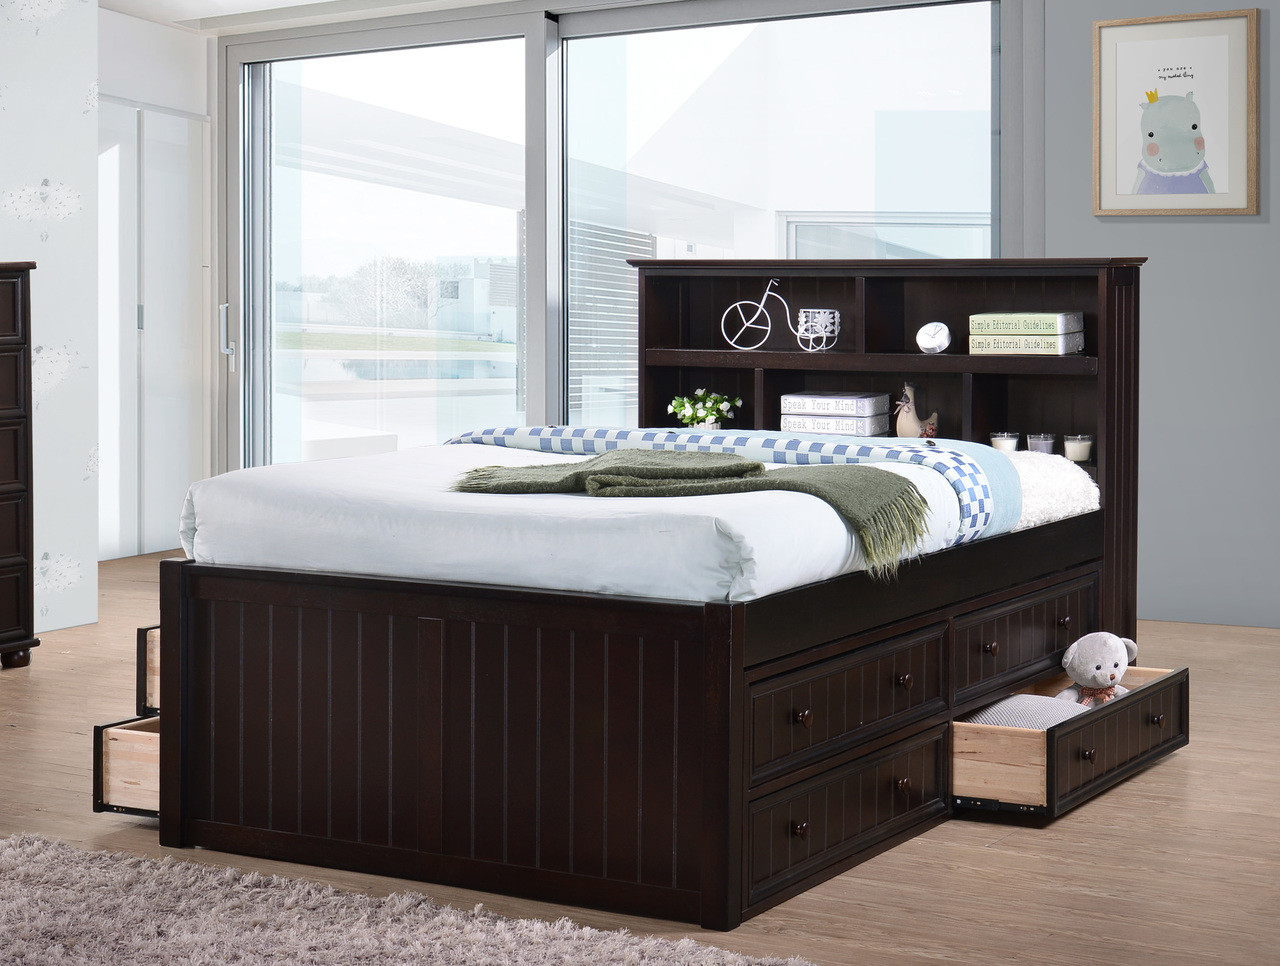 Dillon Wood Bead Board Full Size Captains Bed | Versatile Storage Bed with Book Case ... & Dillon Wood Bead Board Full Size Captains Bed | Orange County